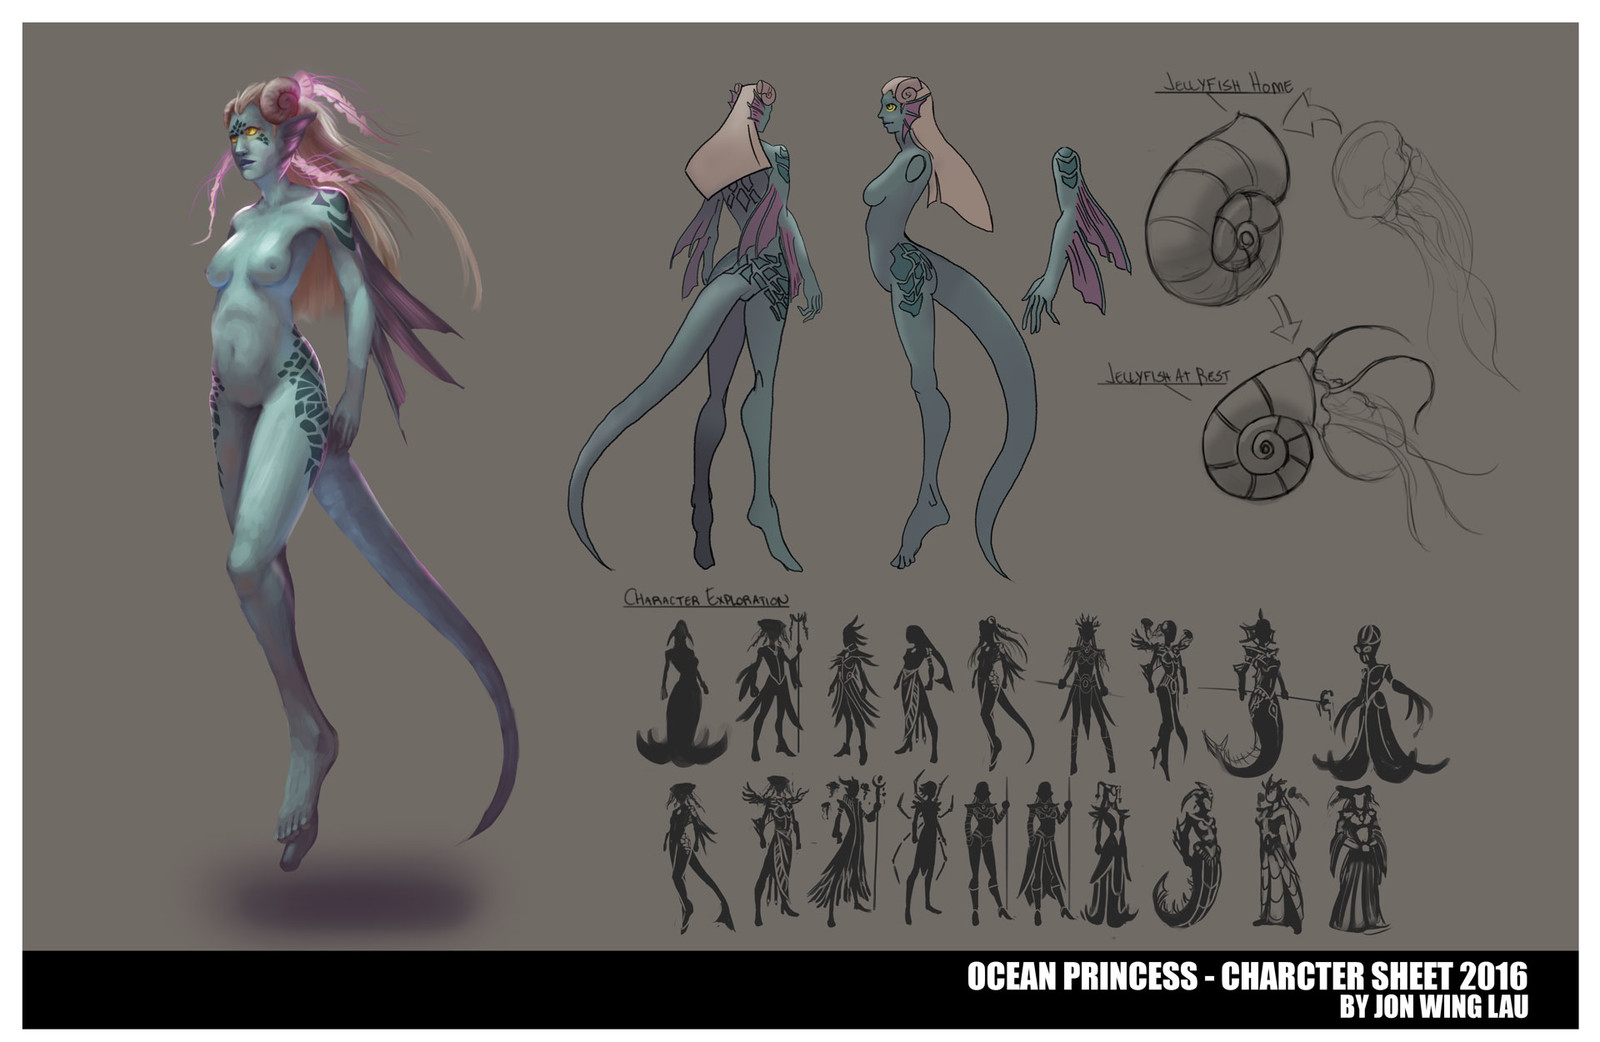 Ocean Princess - Character Design Sheet